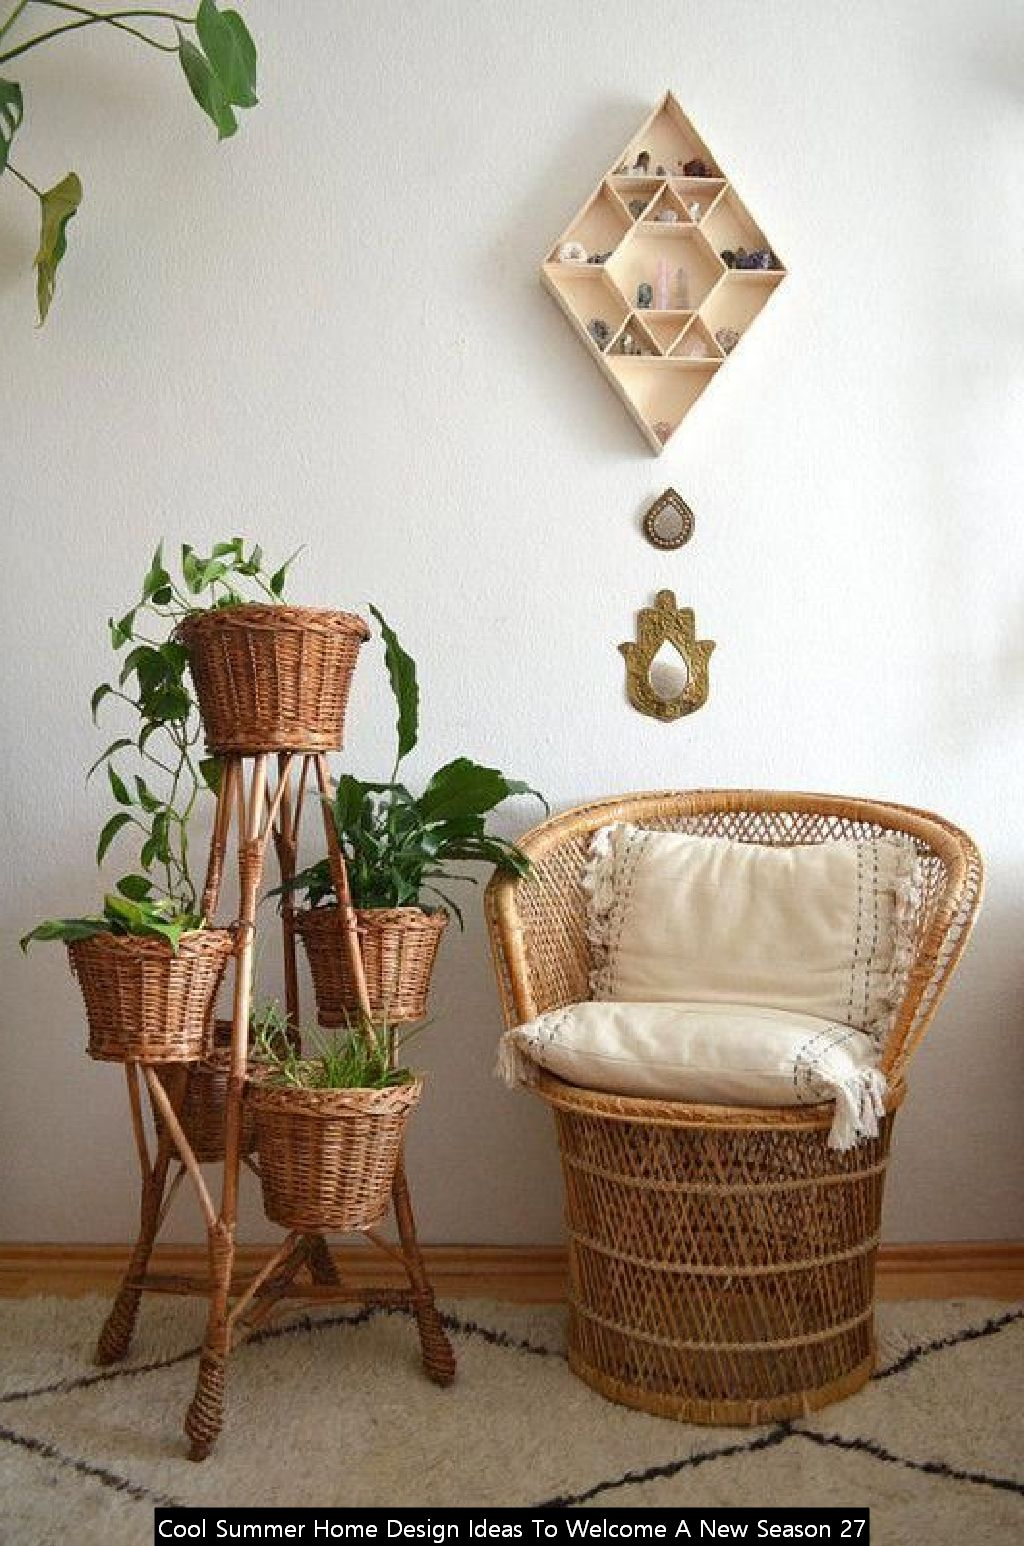 Cool Summer Home Design Ideas To Welcome A New Season 27